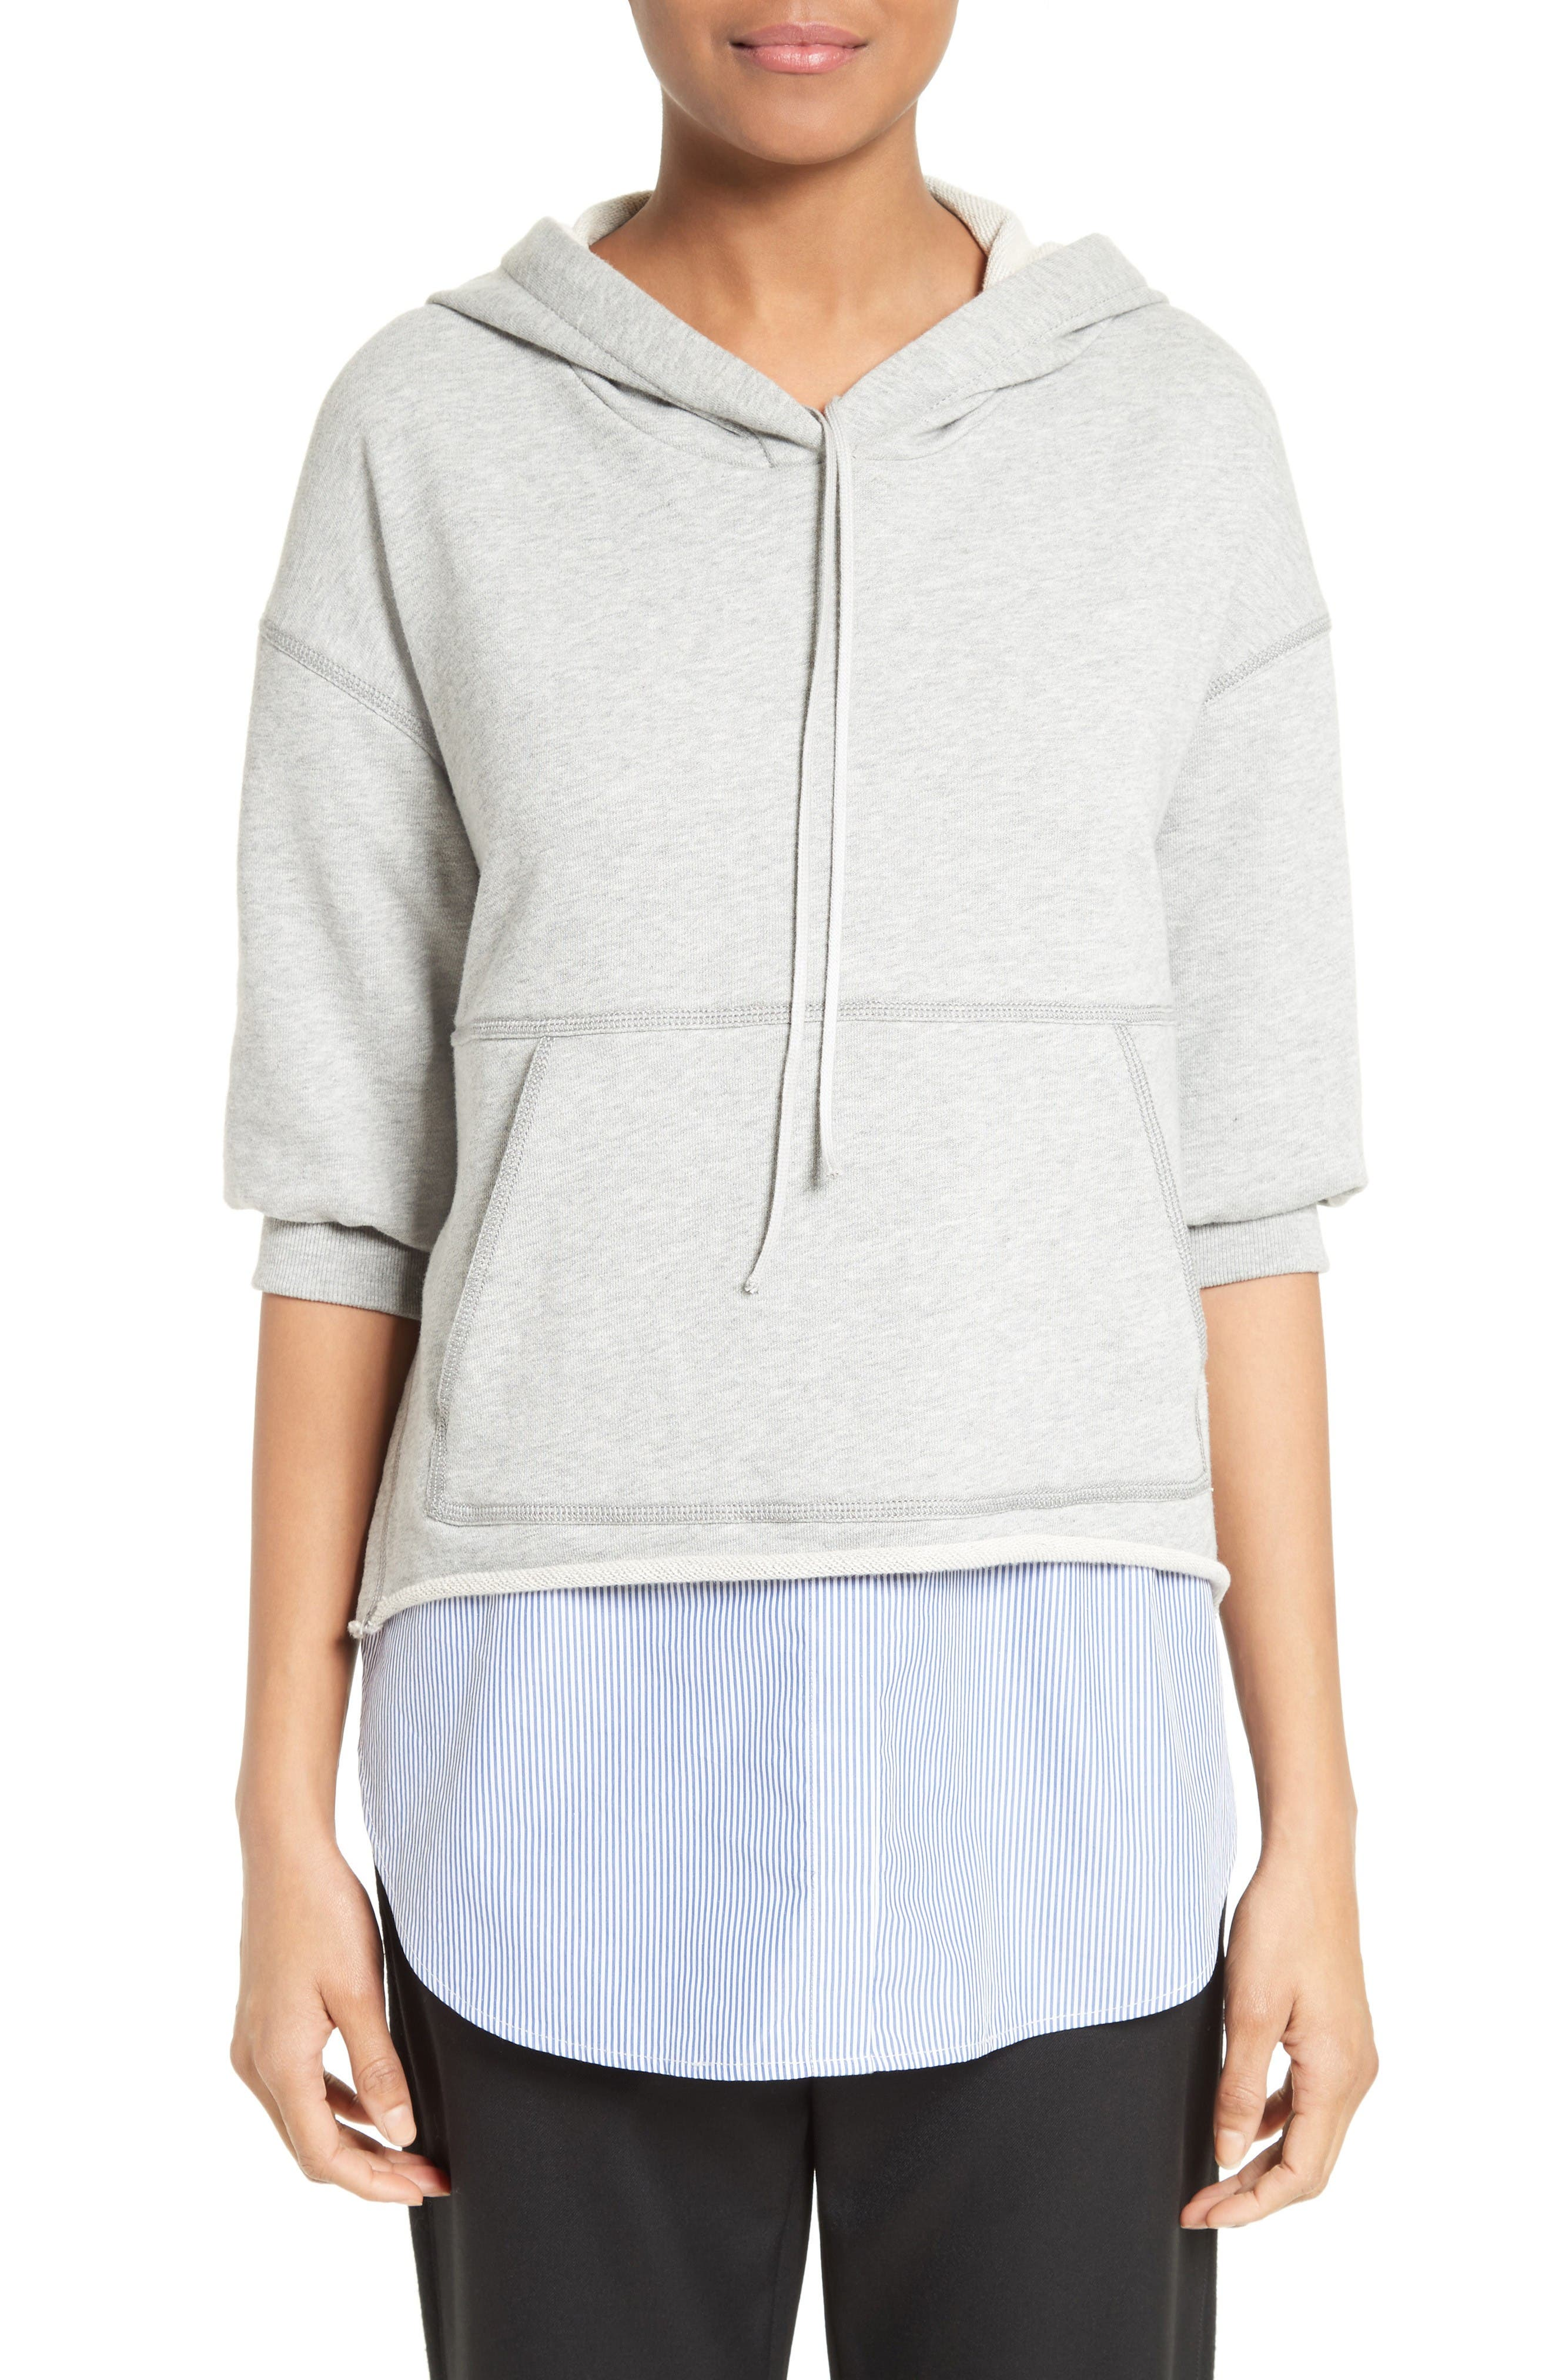 3.1 PHILLIP LIM French Terry Combo Hoodie